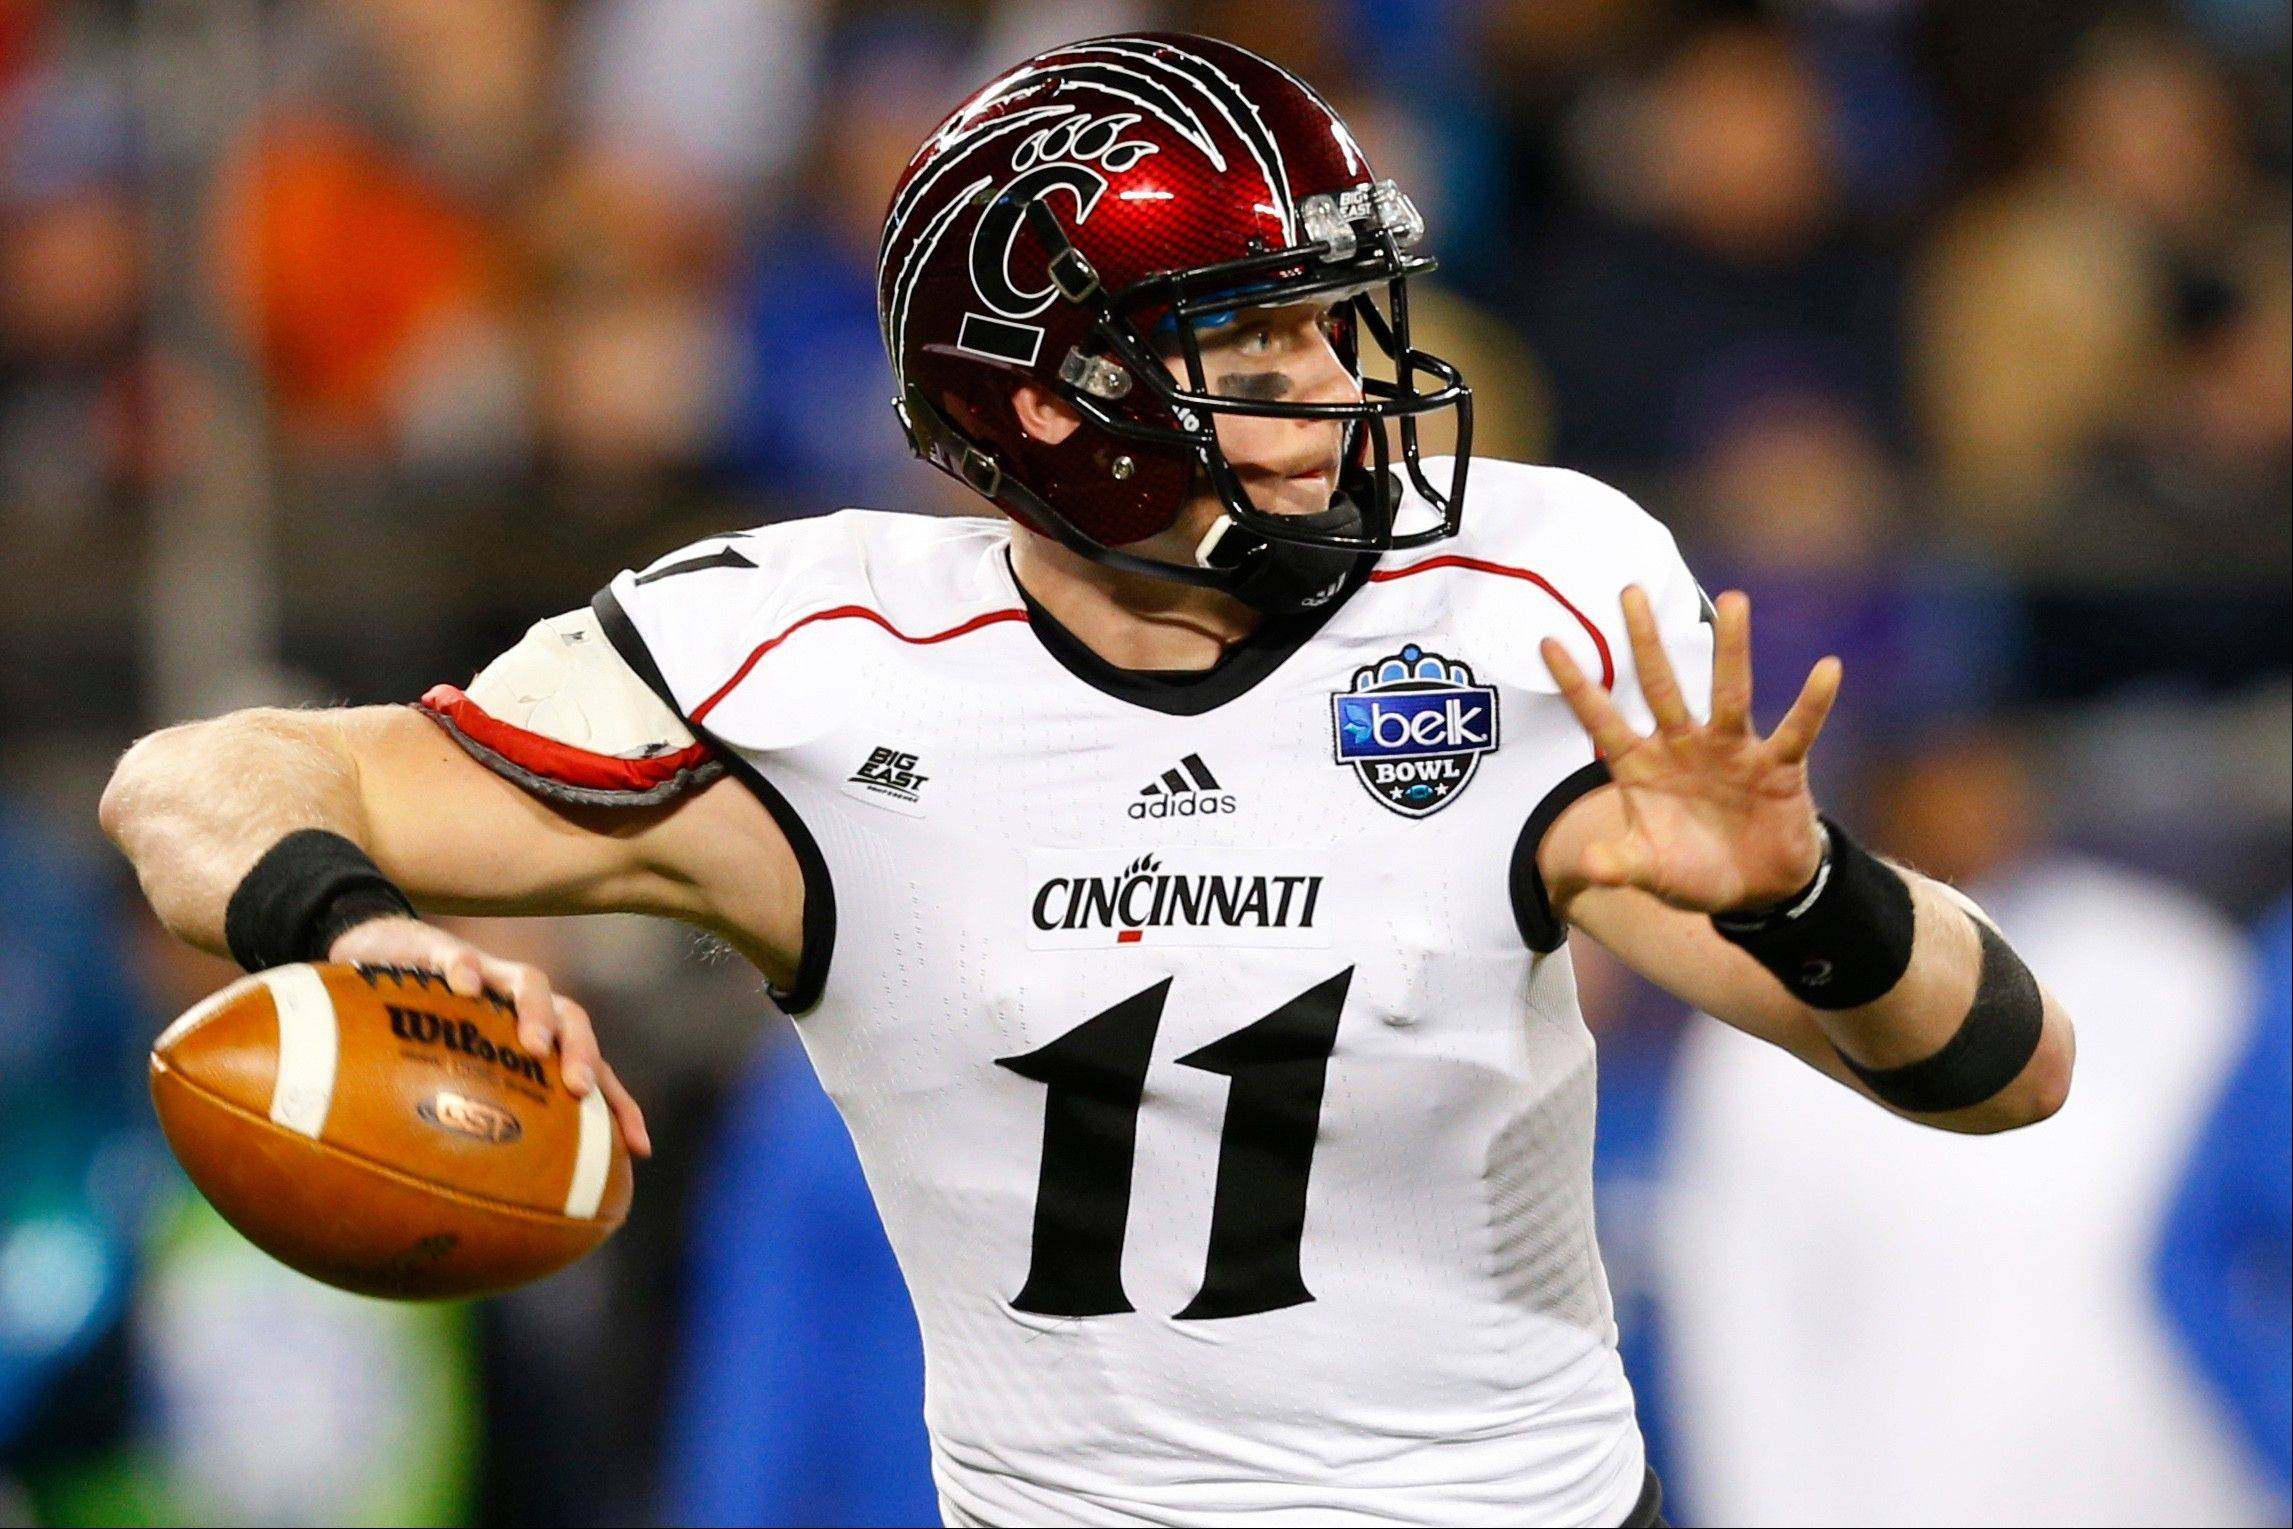 Brendon Kay threw for 332 yards and a Belk Bowl-record four touchdowns, and Cincinnati capitalized on Duke's inept play in the closing minutes to beat the Blue Devils 48-34 on Thursday night.